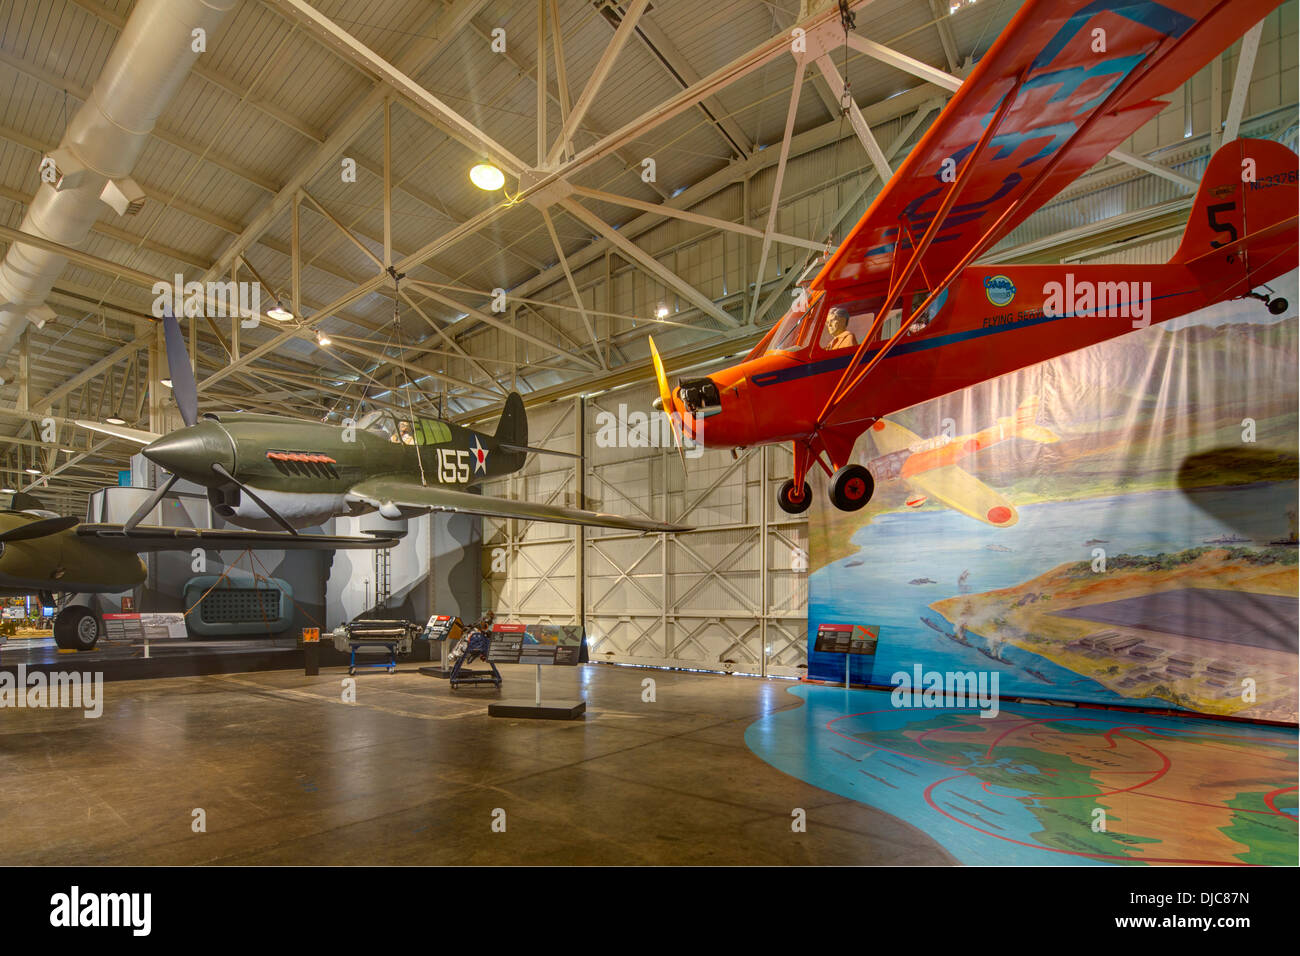 Pacific Aviation Museum Pearl Harbor, Ford Island, Honolulu, Oahu, Hawaii - Stock Image